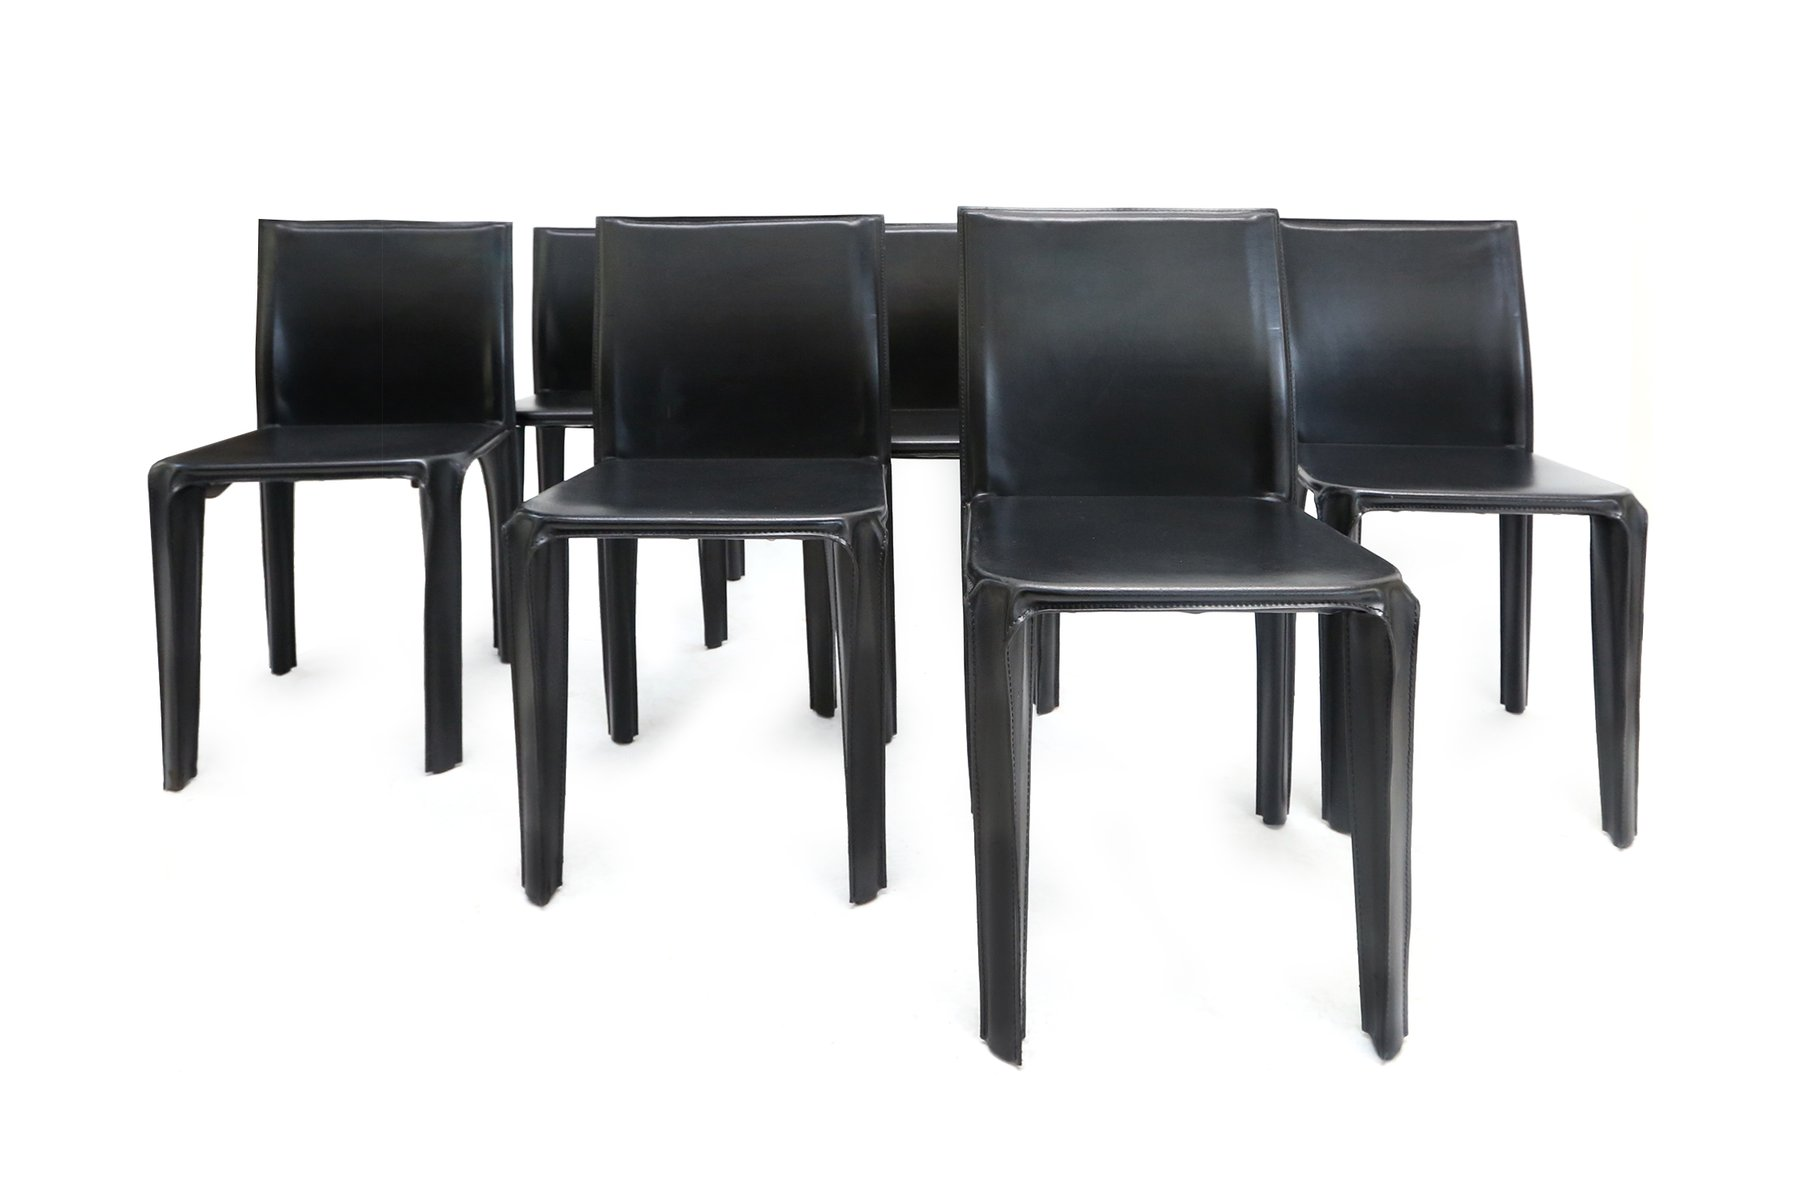 Black Leather Dining Chairs from Arper 1970s Set of 6 for sale